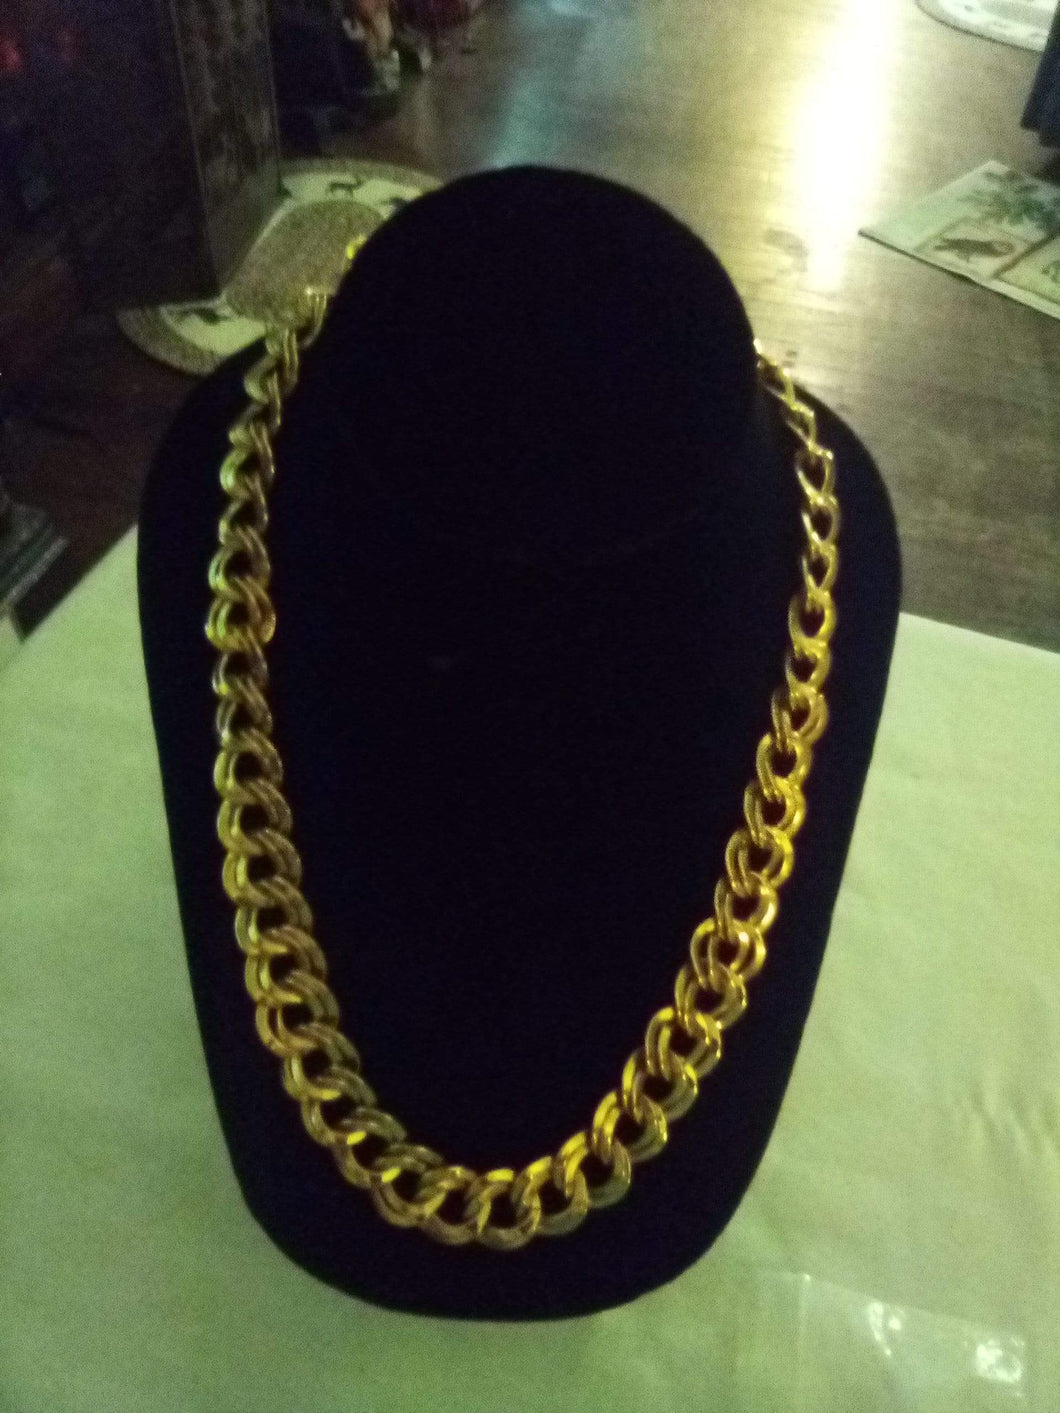 Gold tone nice necklace - B&P'sringsnthings